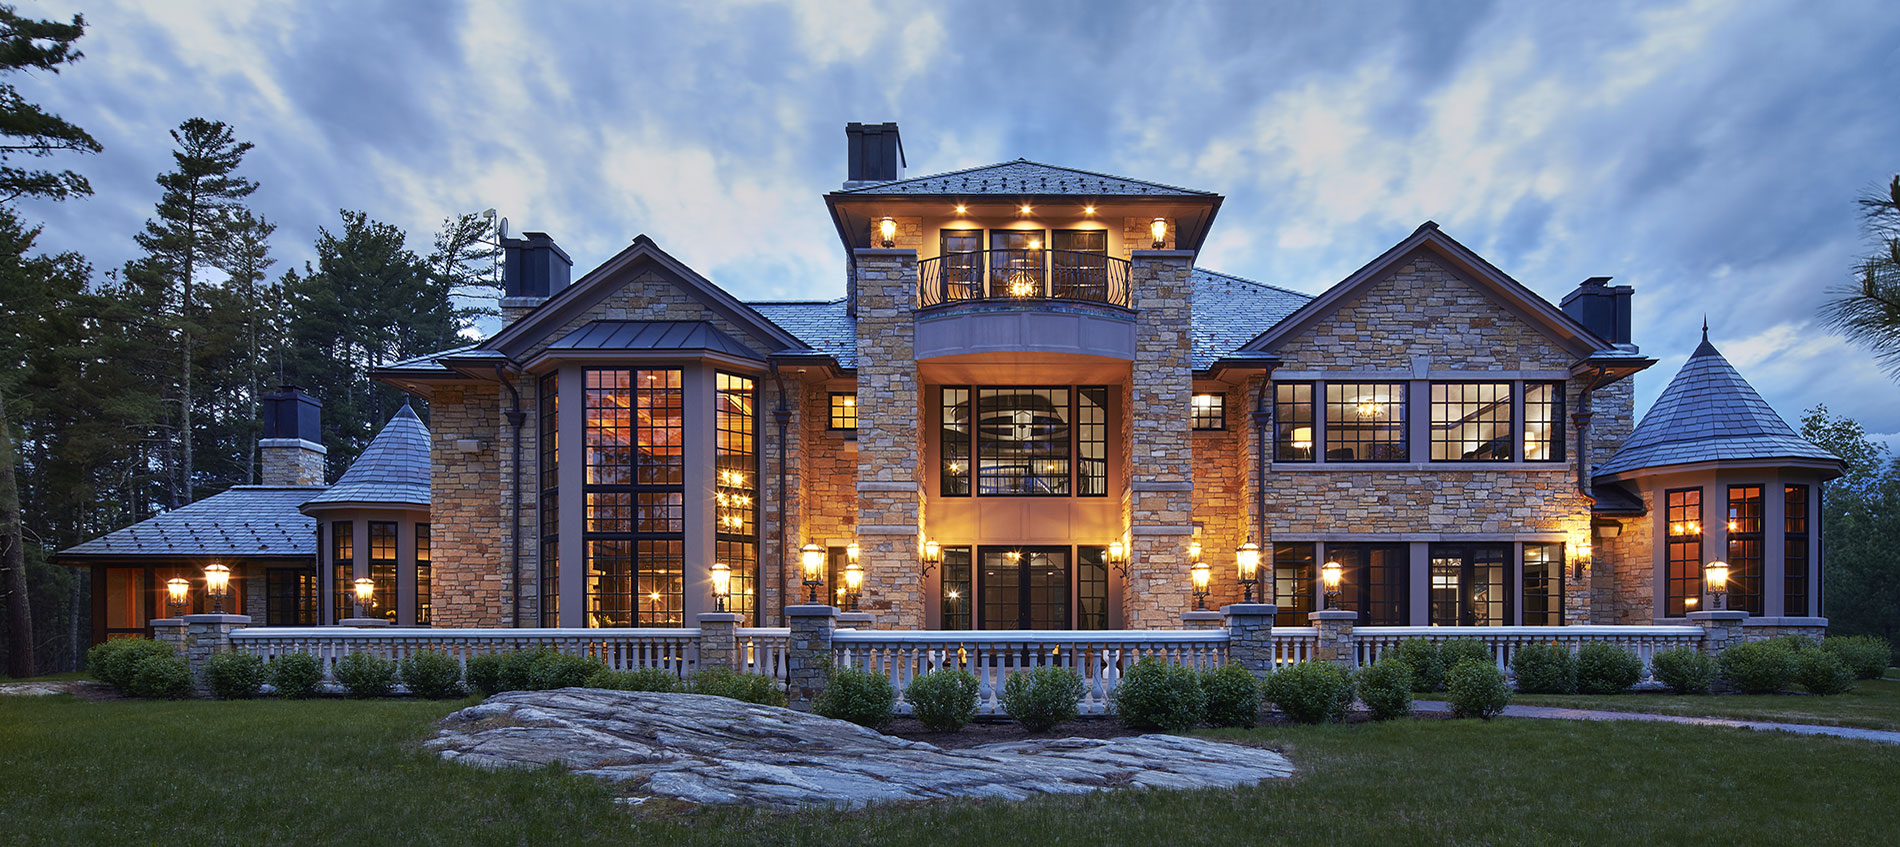 Smuckler architectural custom homes premier luxury home for Most expensive homes in minnesota